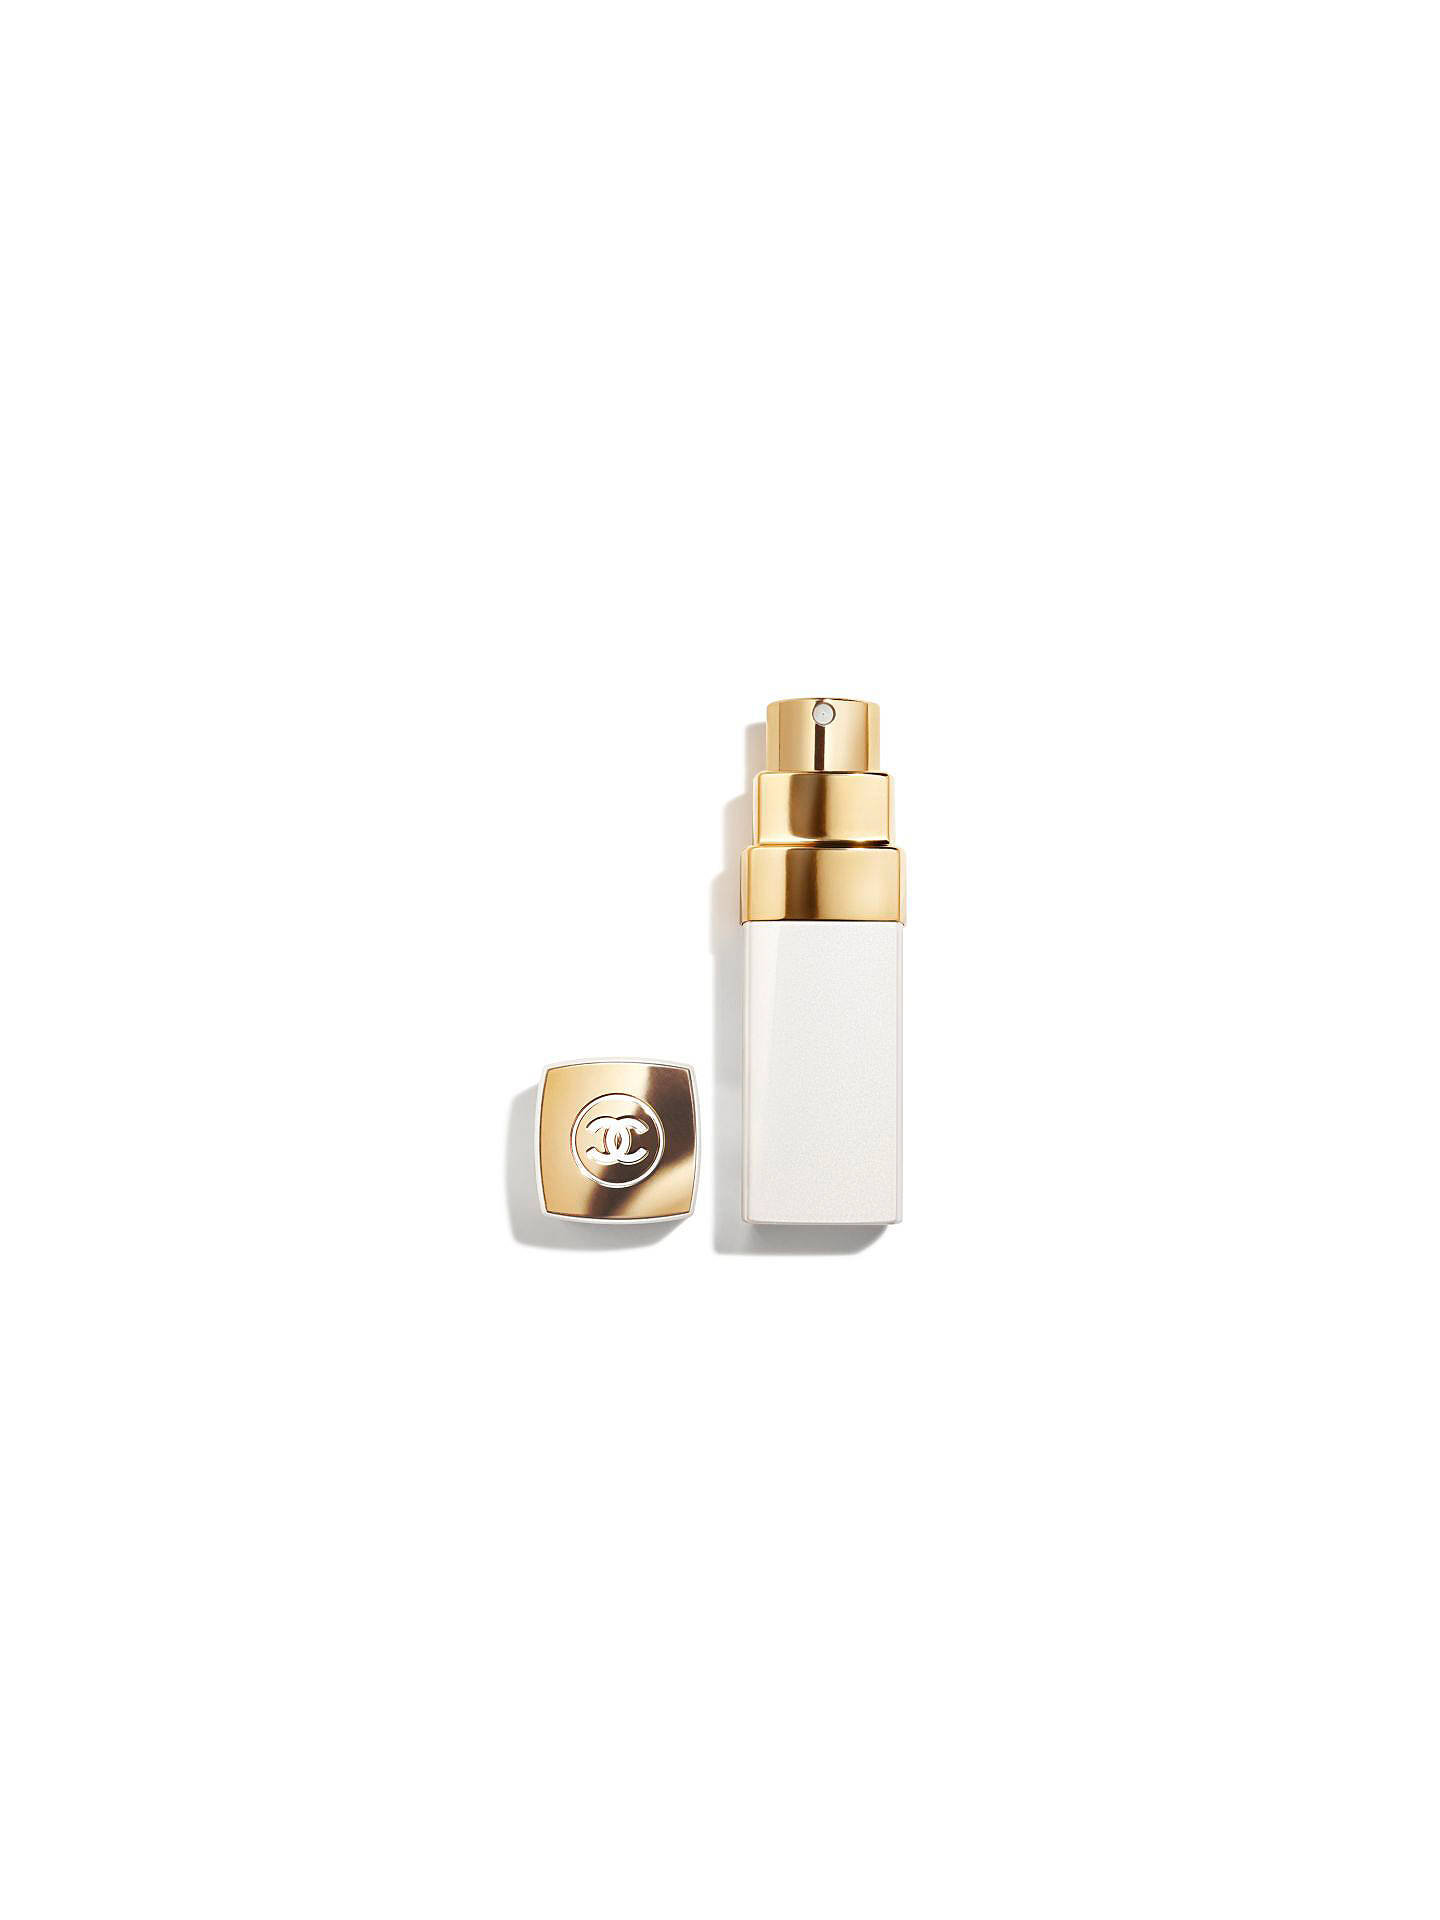 CHANEL COCO MADEMOISELLE Parfum Purse Spray at John Lewis ...